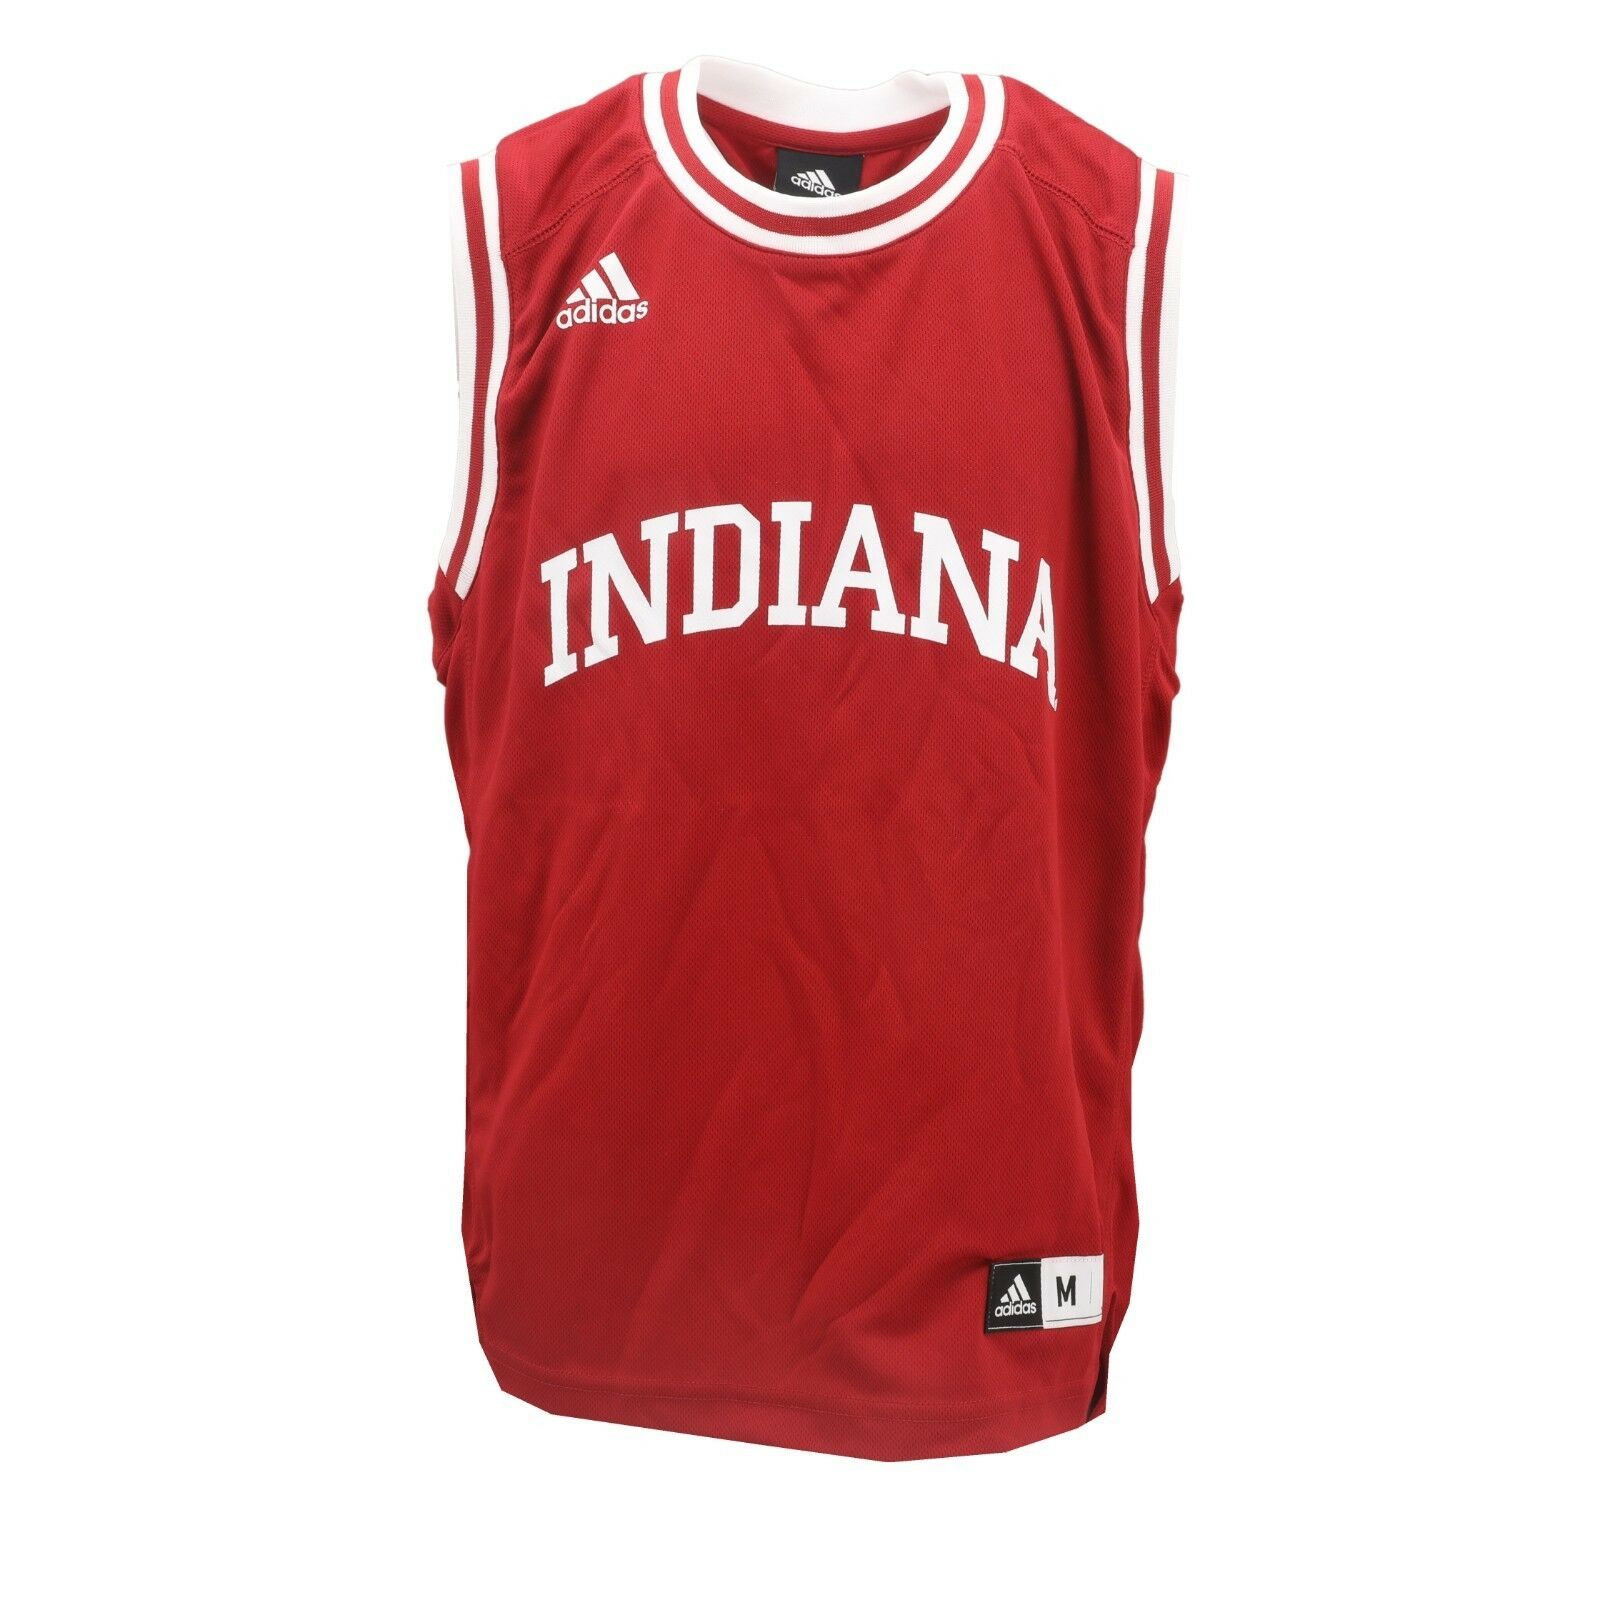 competitive price 0ac76 1709e Details about Indiana Hoosiers Official NCAA Adidas Kids Youth Size  Basketball Jersey New Tags